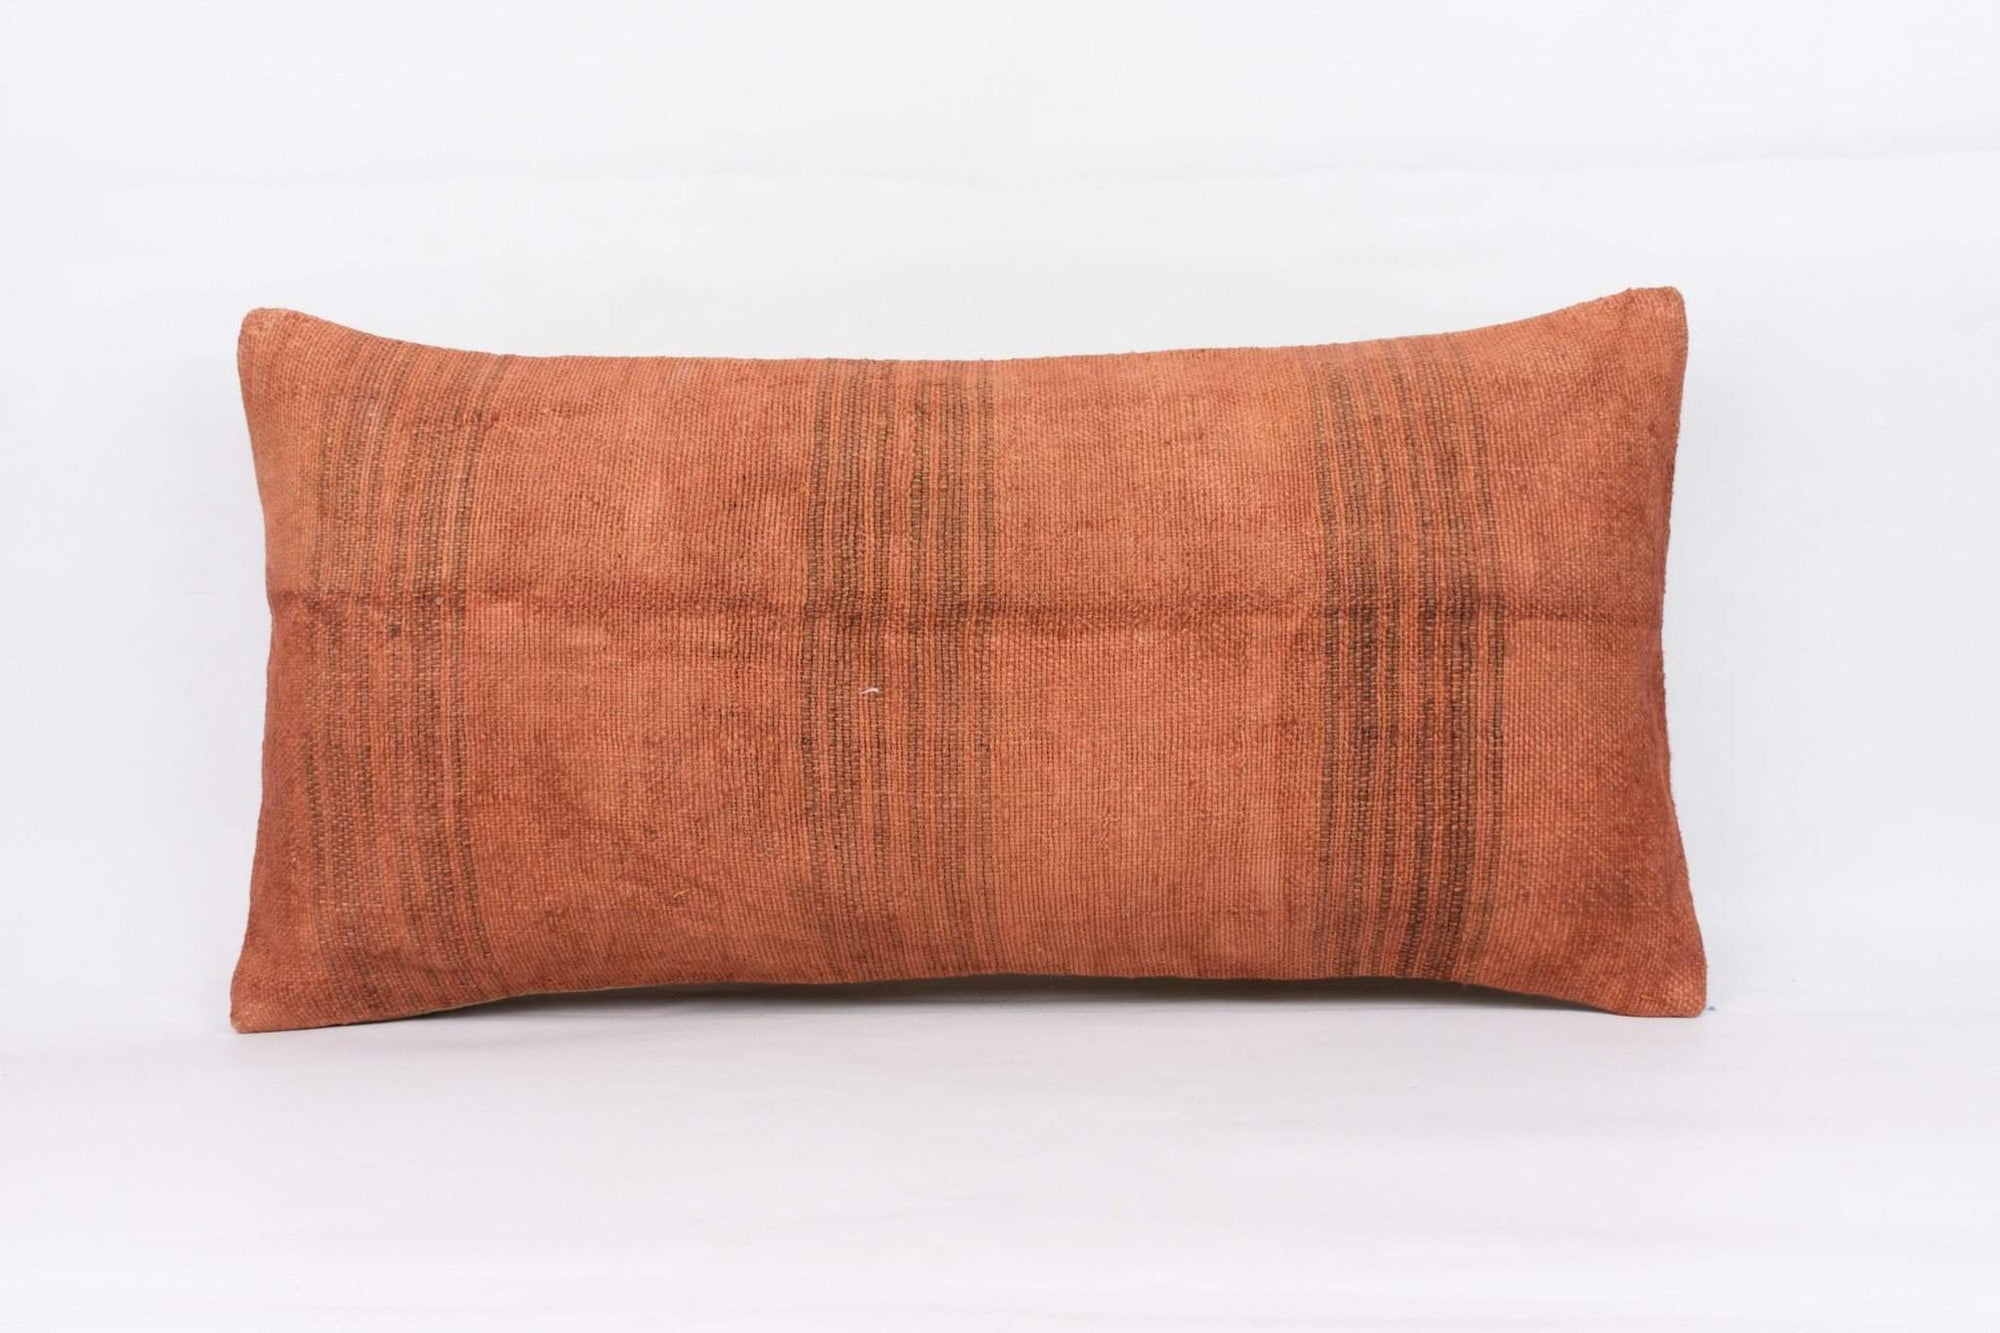 Plain Brown Kilim Pillow Cover 12x24 4180